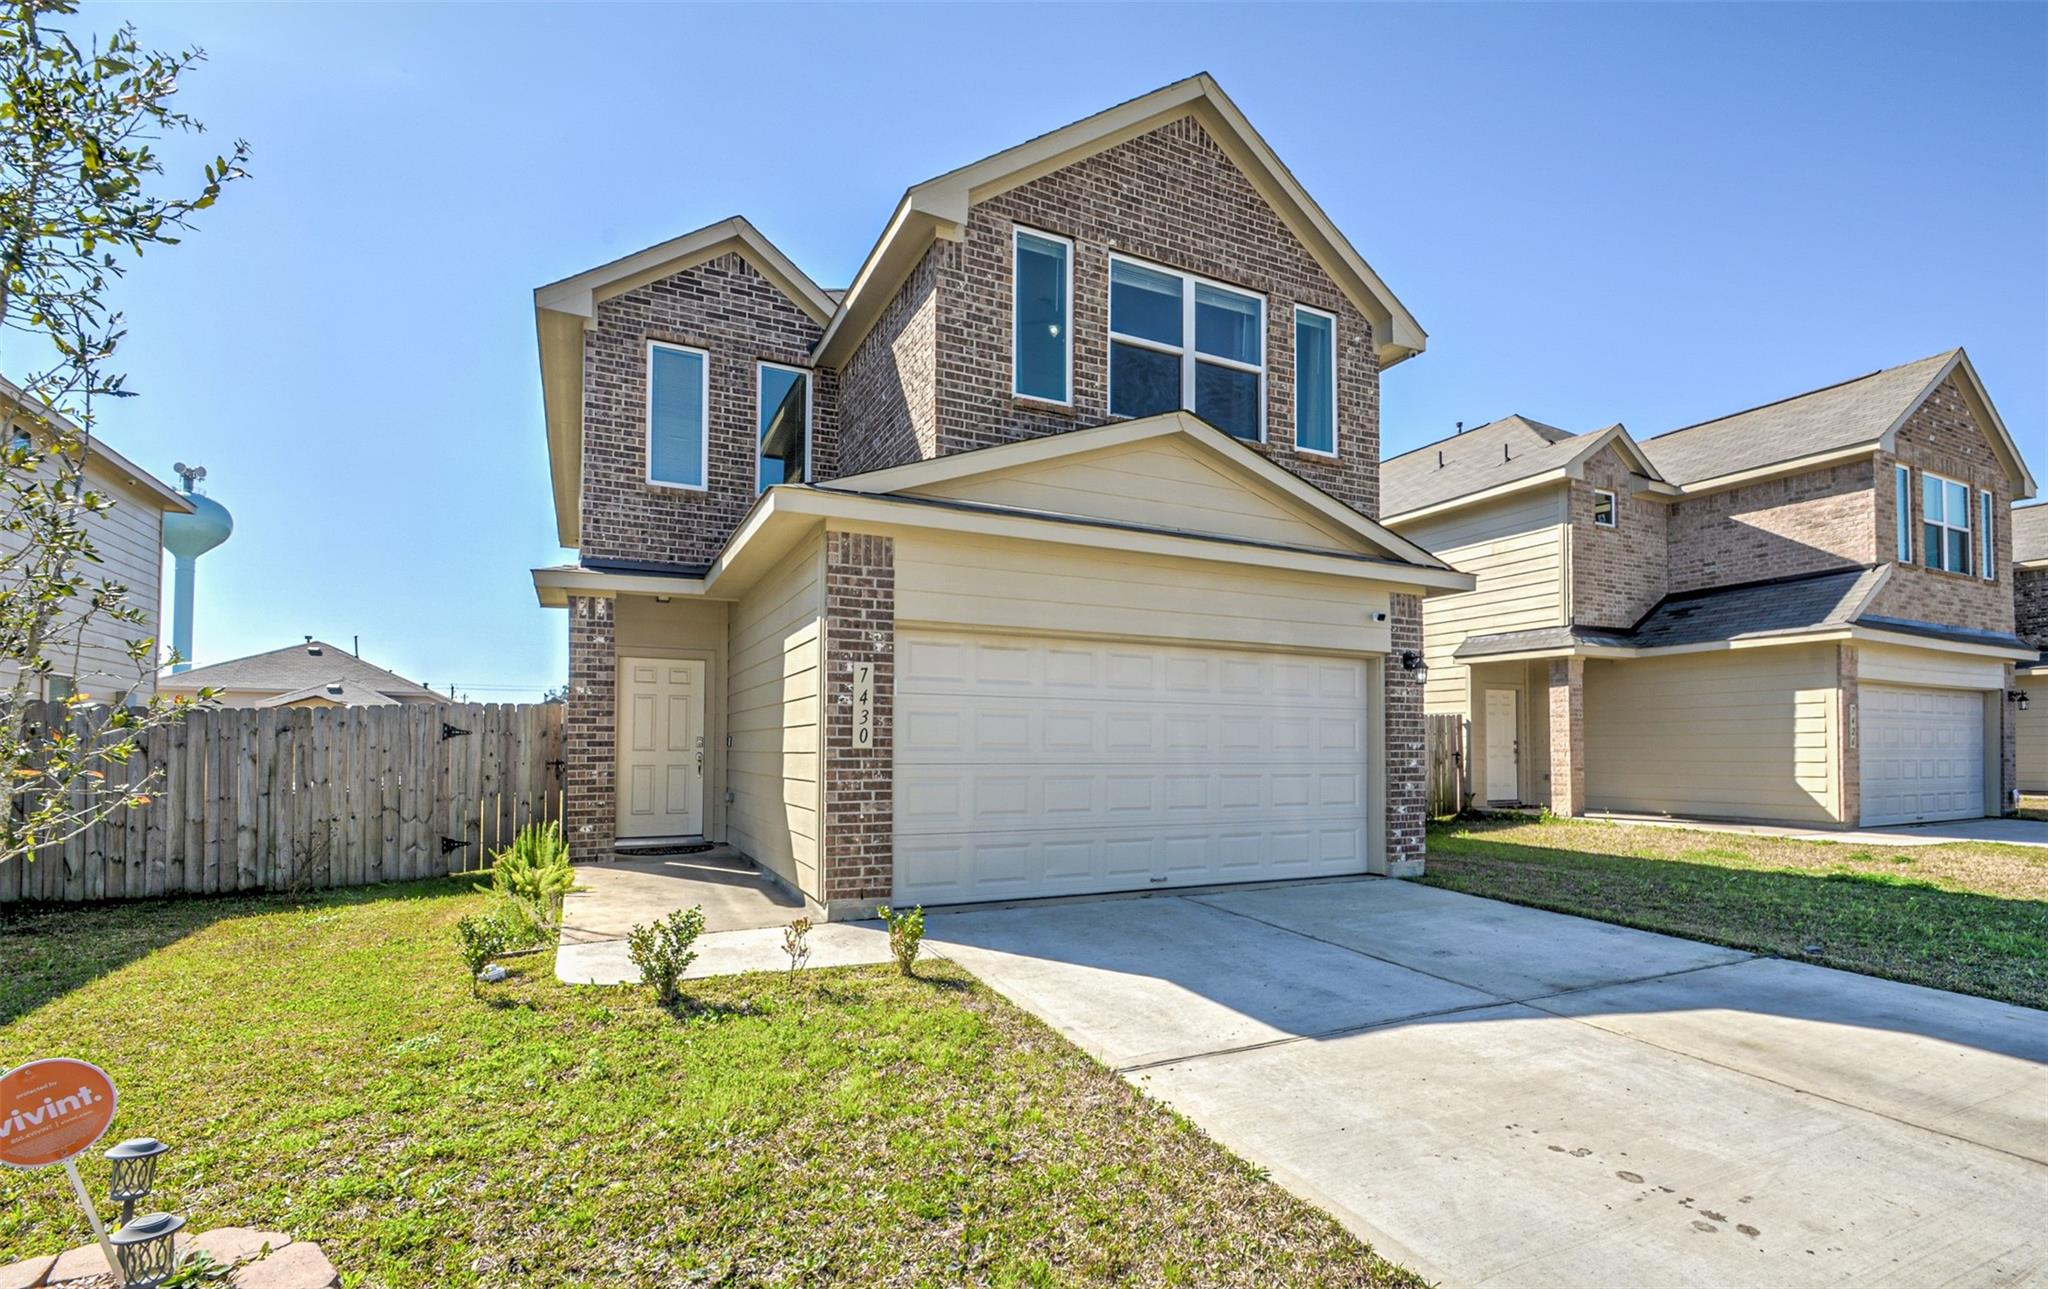 7430 Pickett Orchard Drive Property Photo - Houston, TX real estate listing